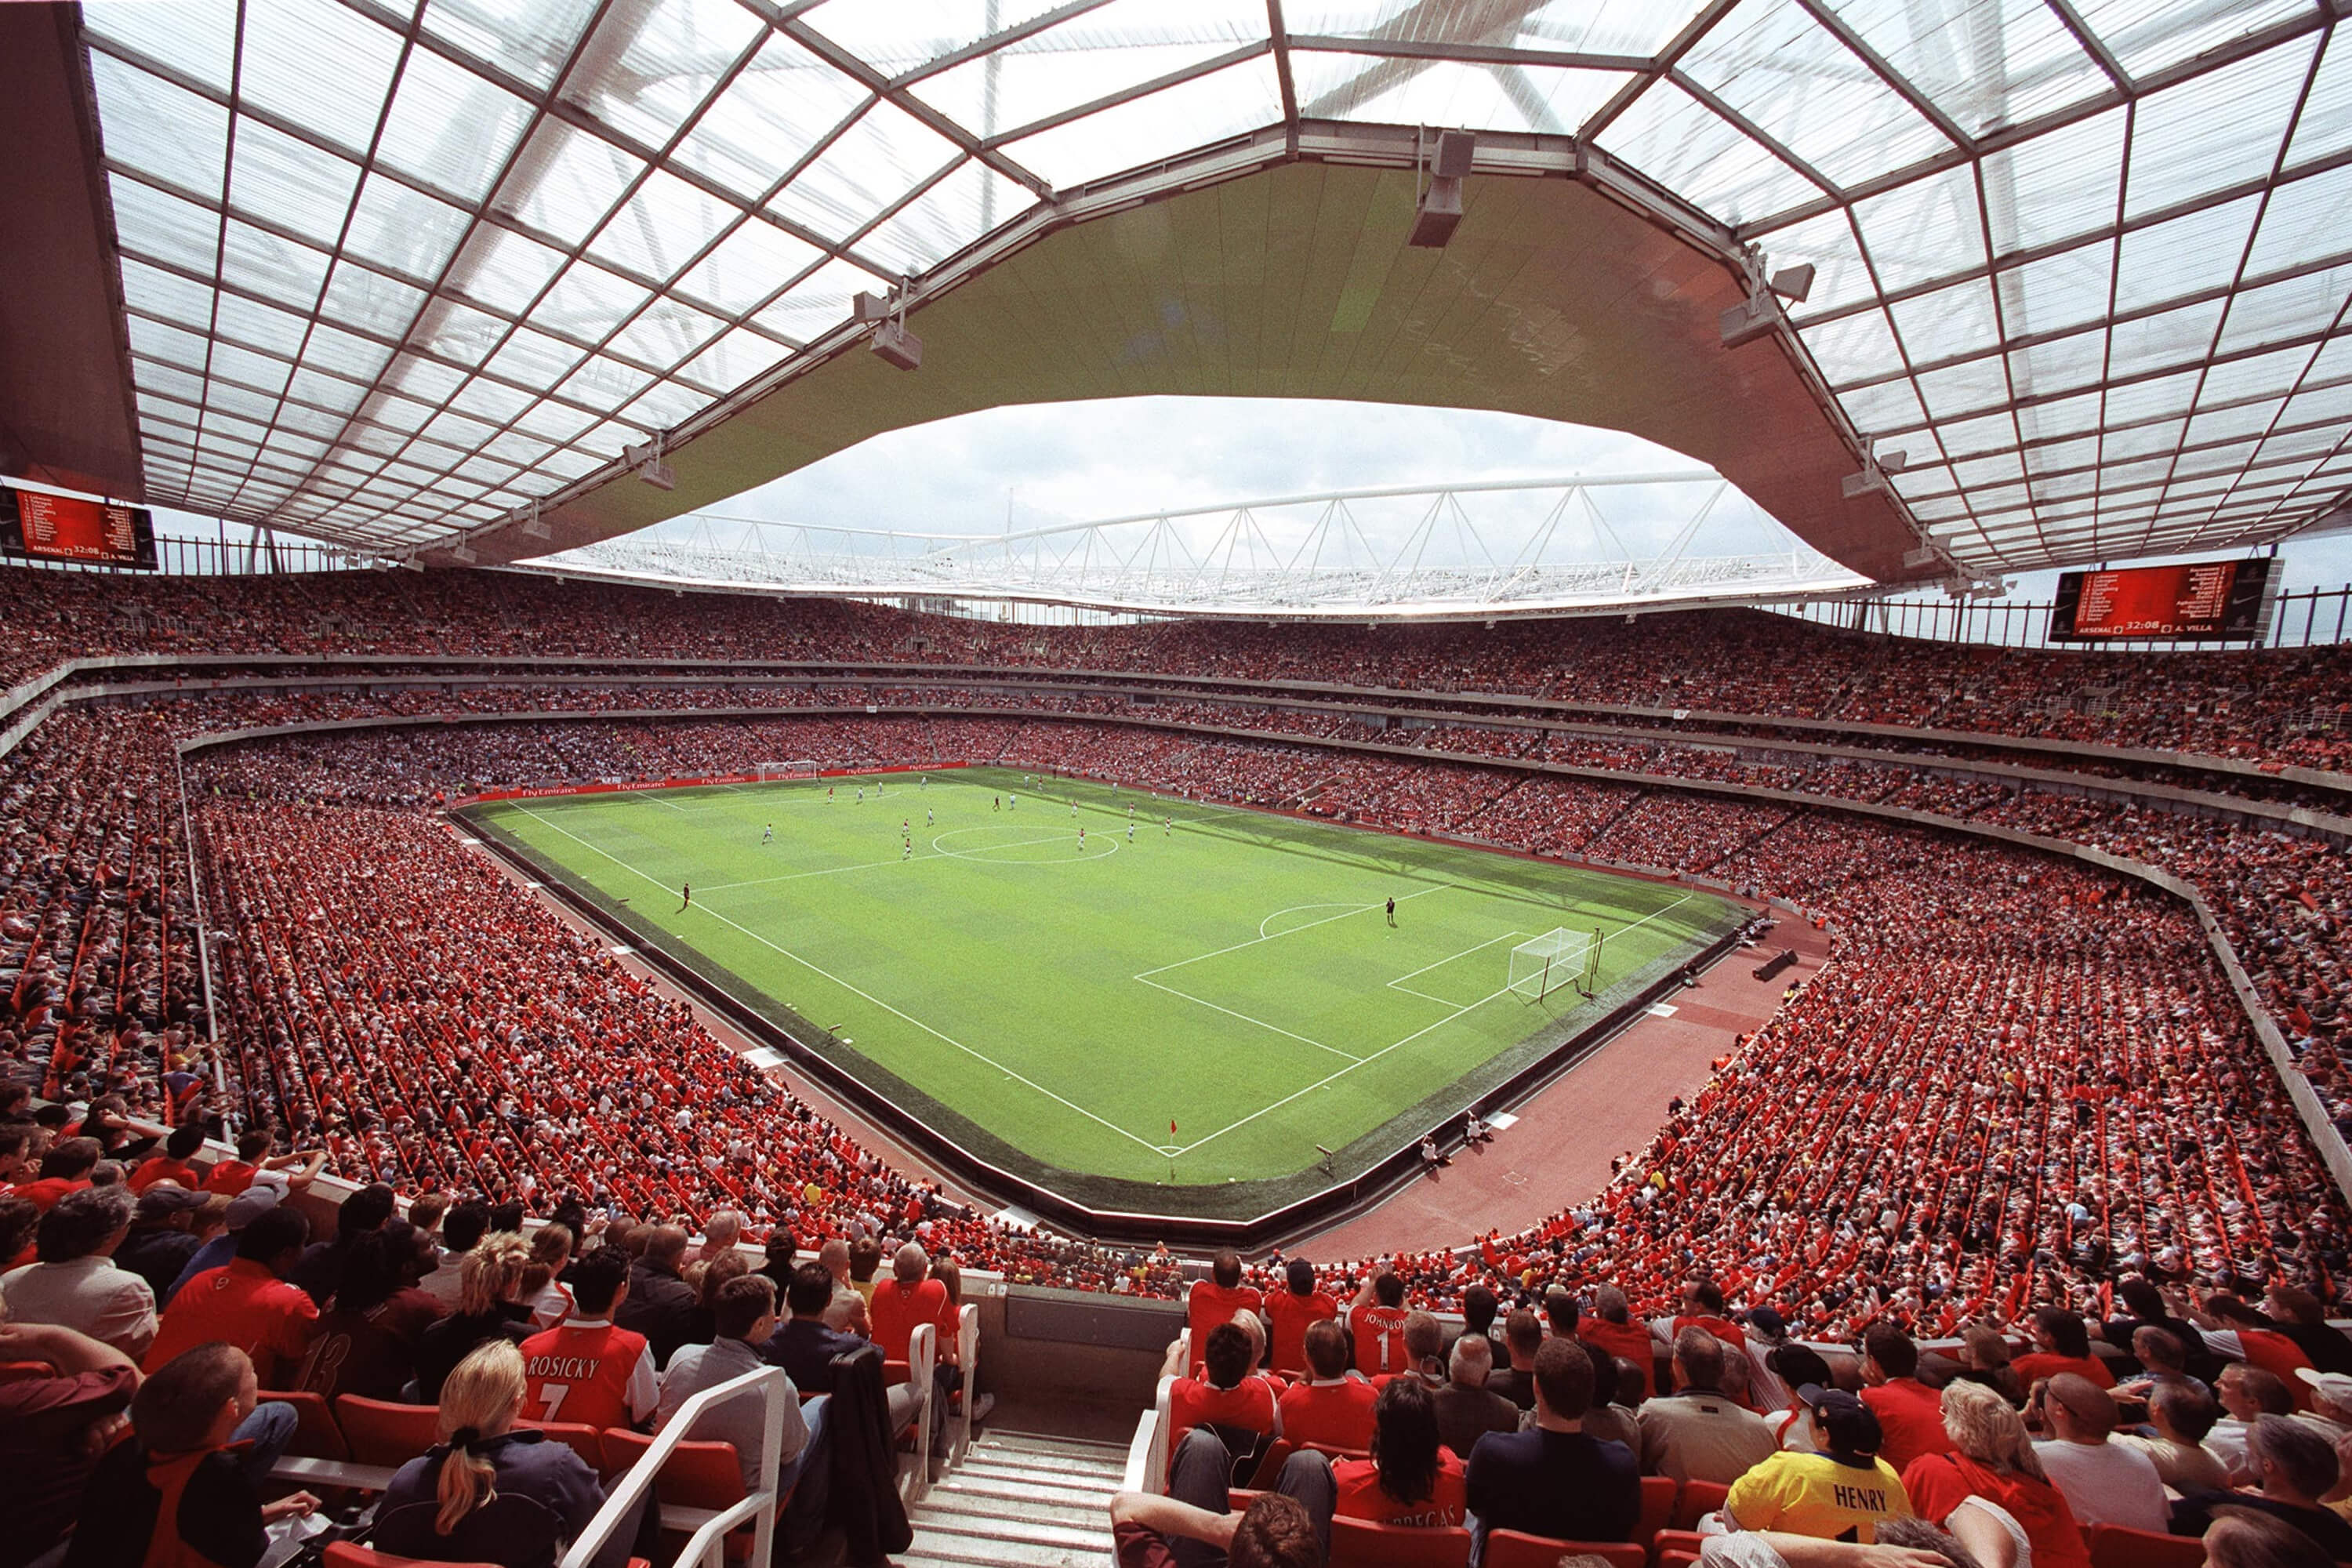 Two tickets to see Arsenal at Emirates statium